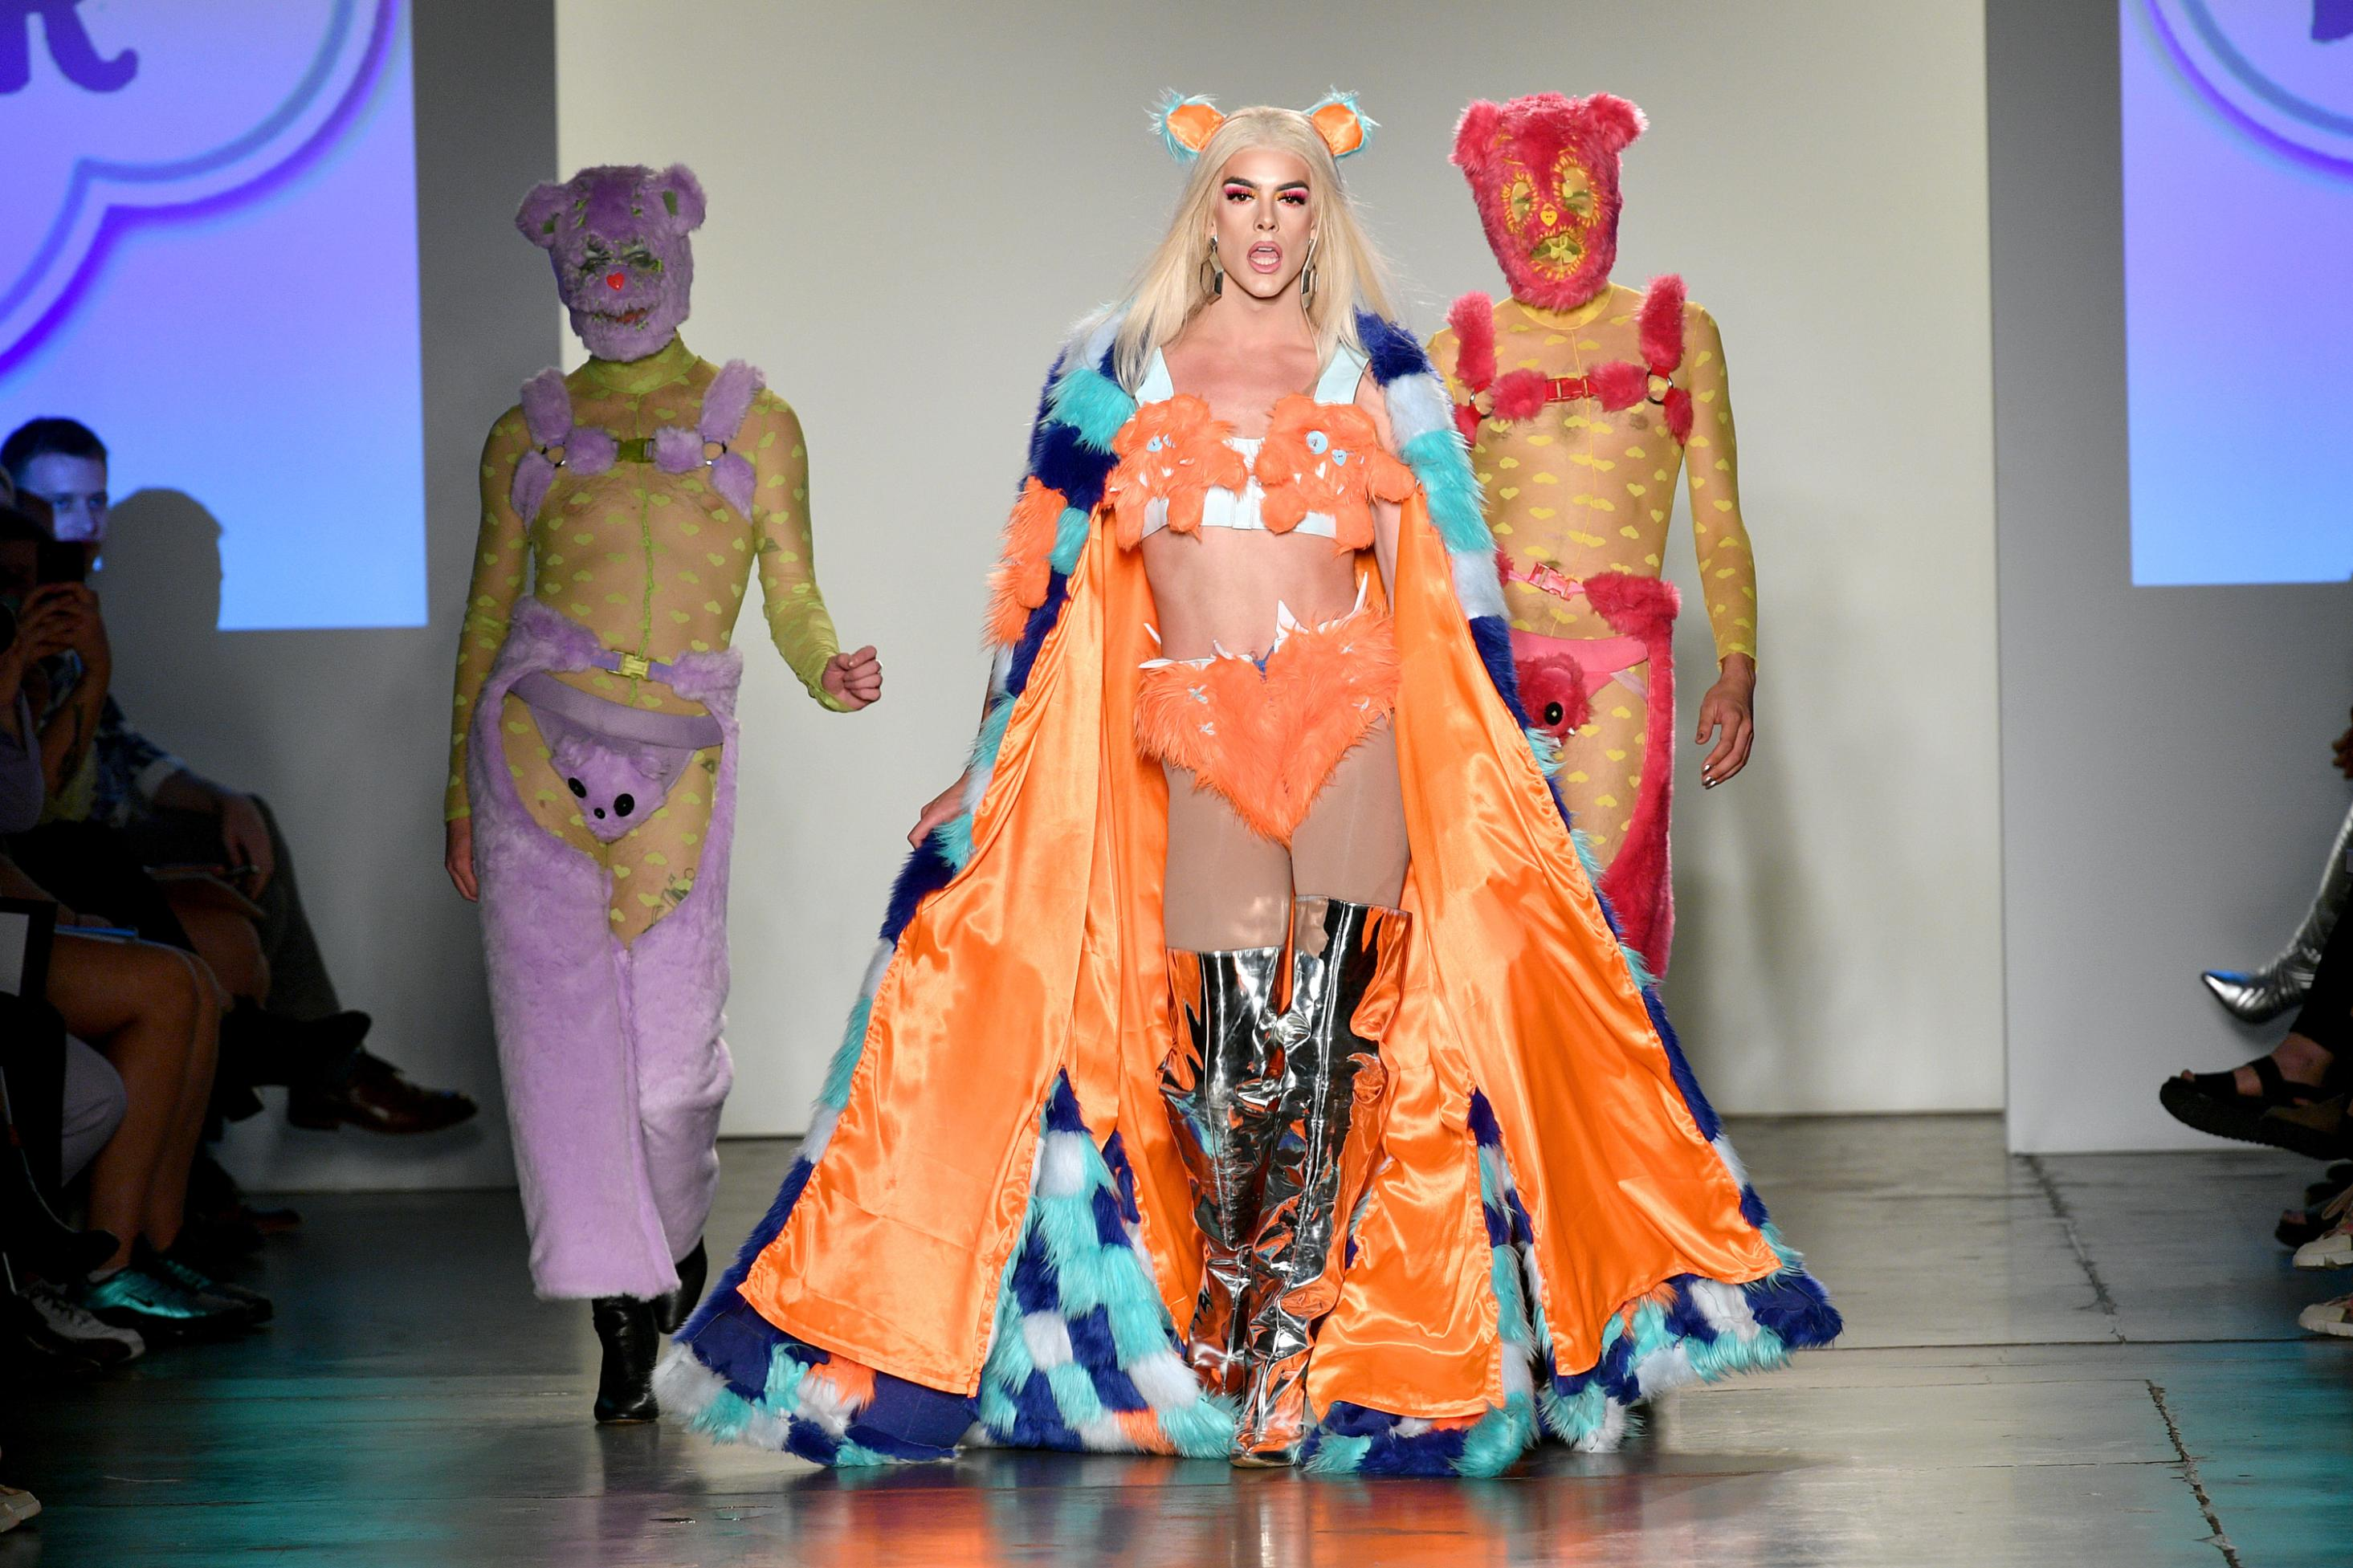 New York Fashion Week 2020 Dates.New York Fashion Week Highlights The Most Talked About